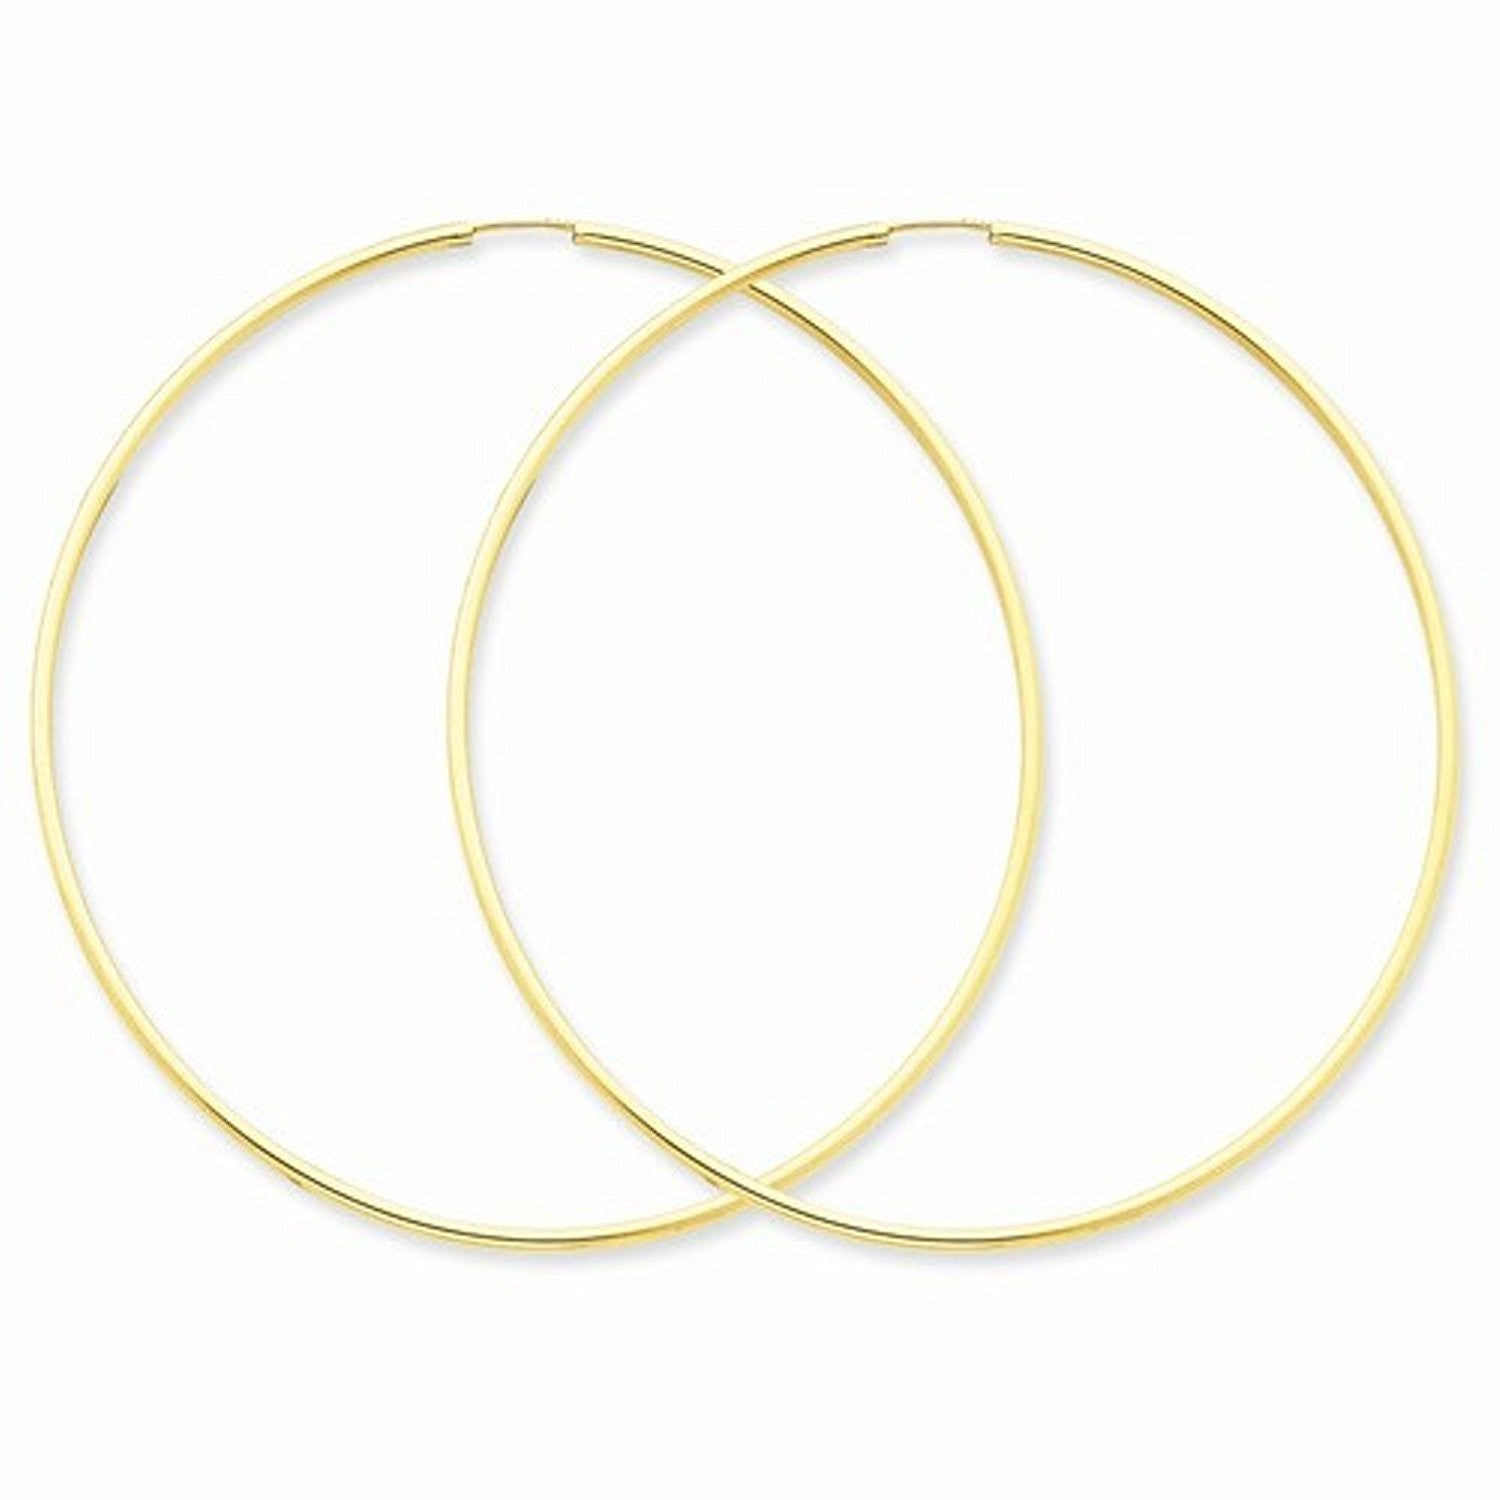 14K Yellow Gold 60mm x 1.5mm Endless Round Hoop Earrings